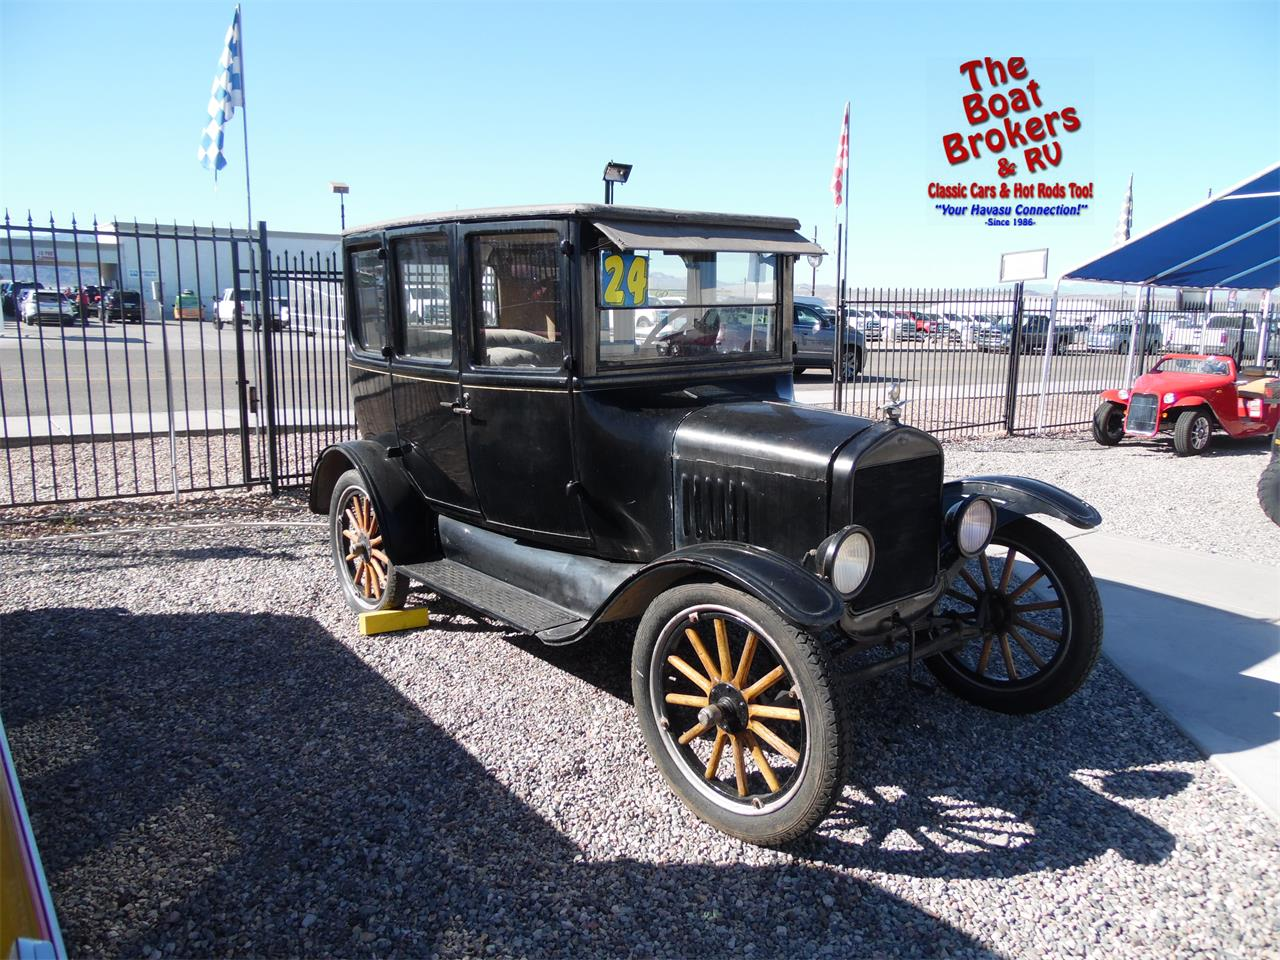 Large picture of 24 model t ll9h